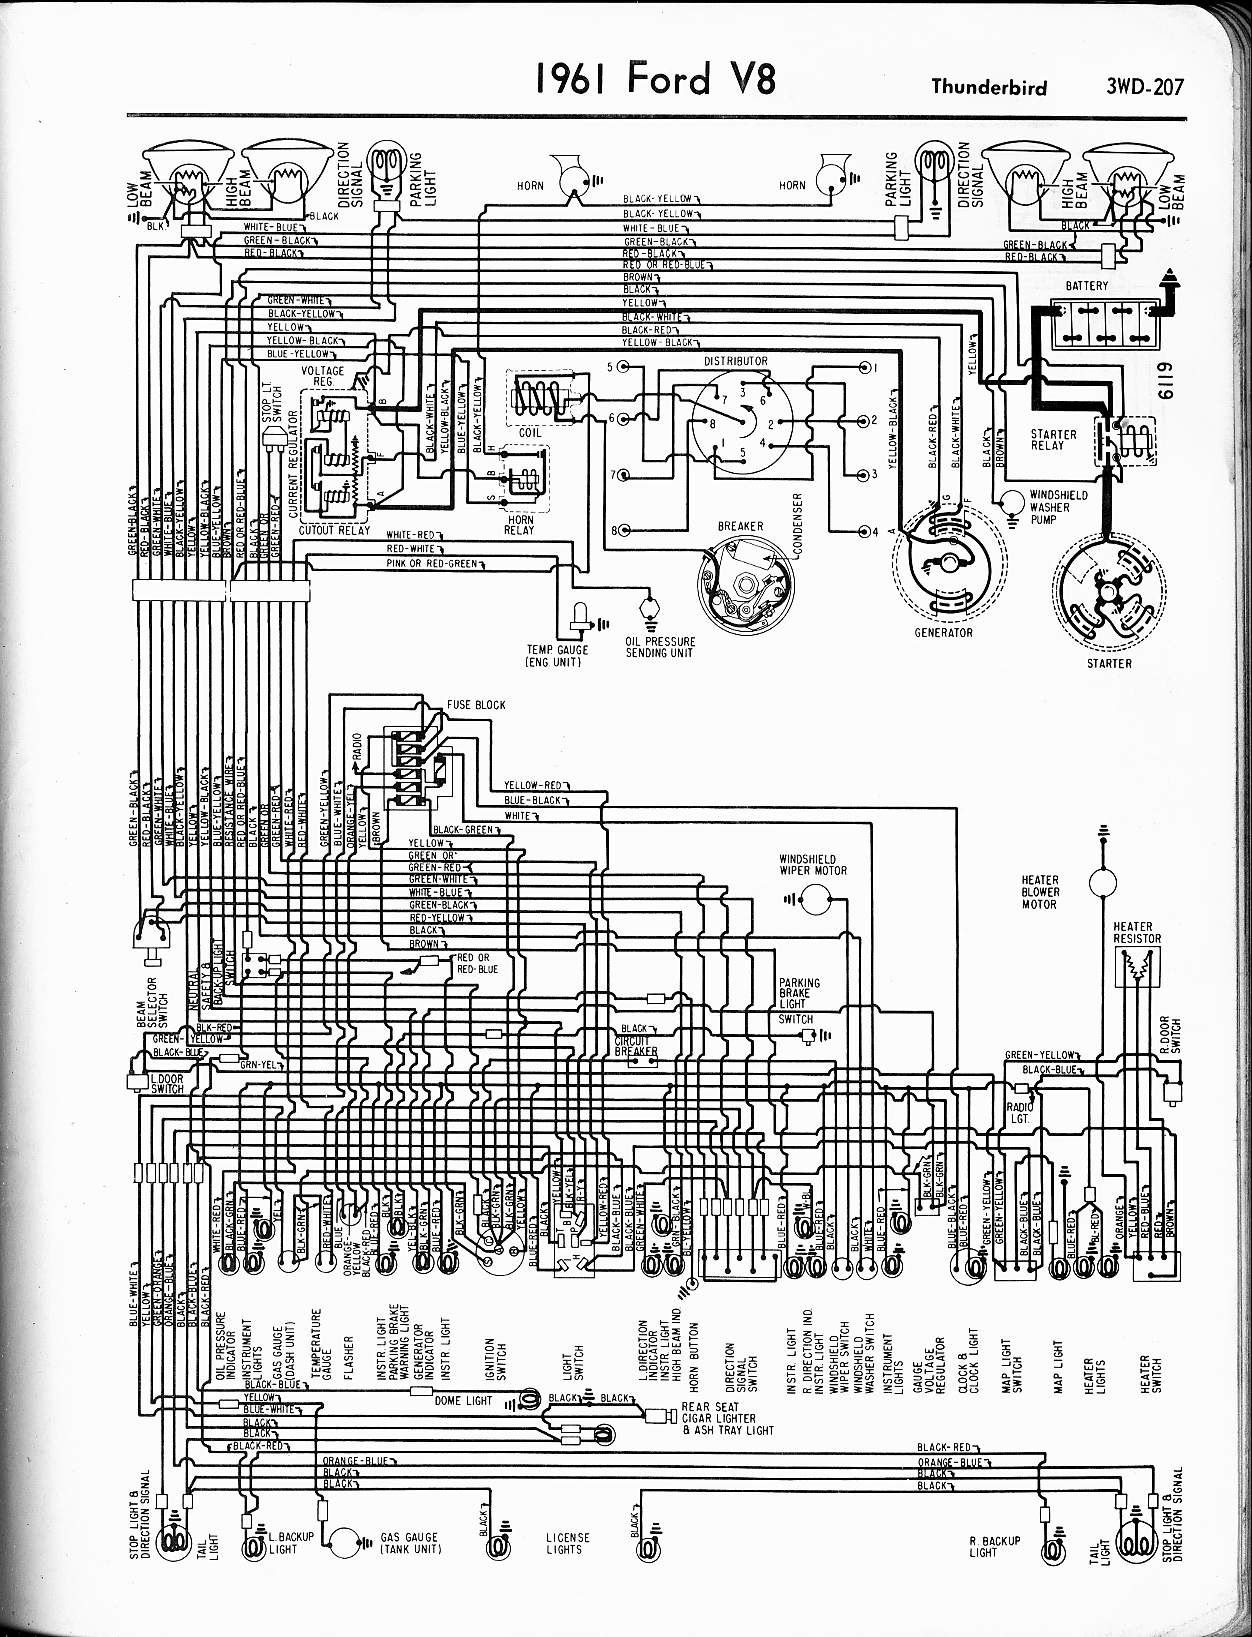 1965 Ford Truck Wiring Diagrams Click 289 Ignition Coil Diagram 57 65 Mustang